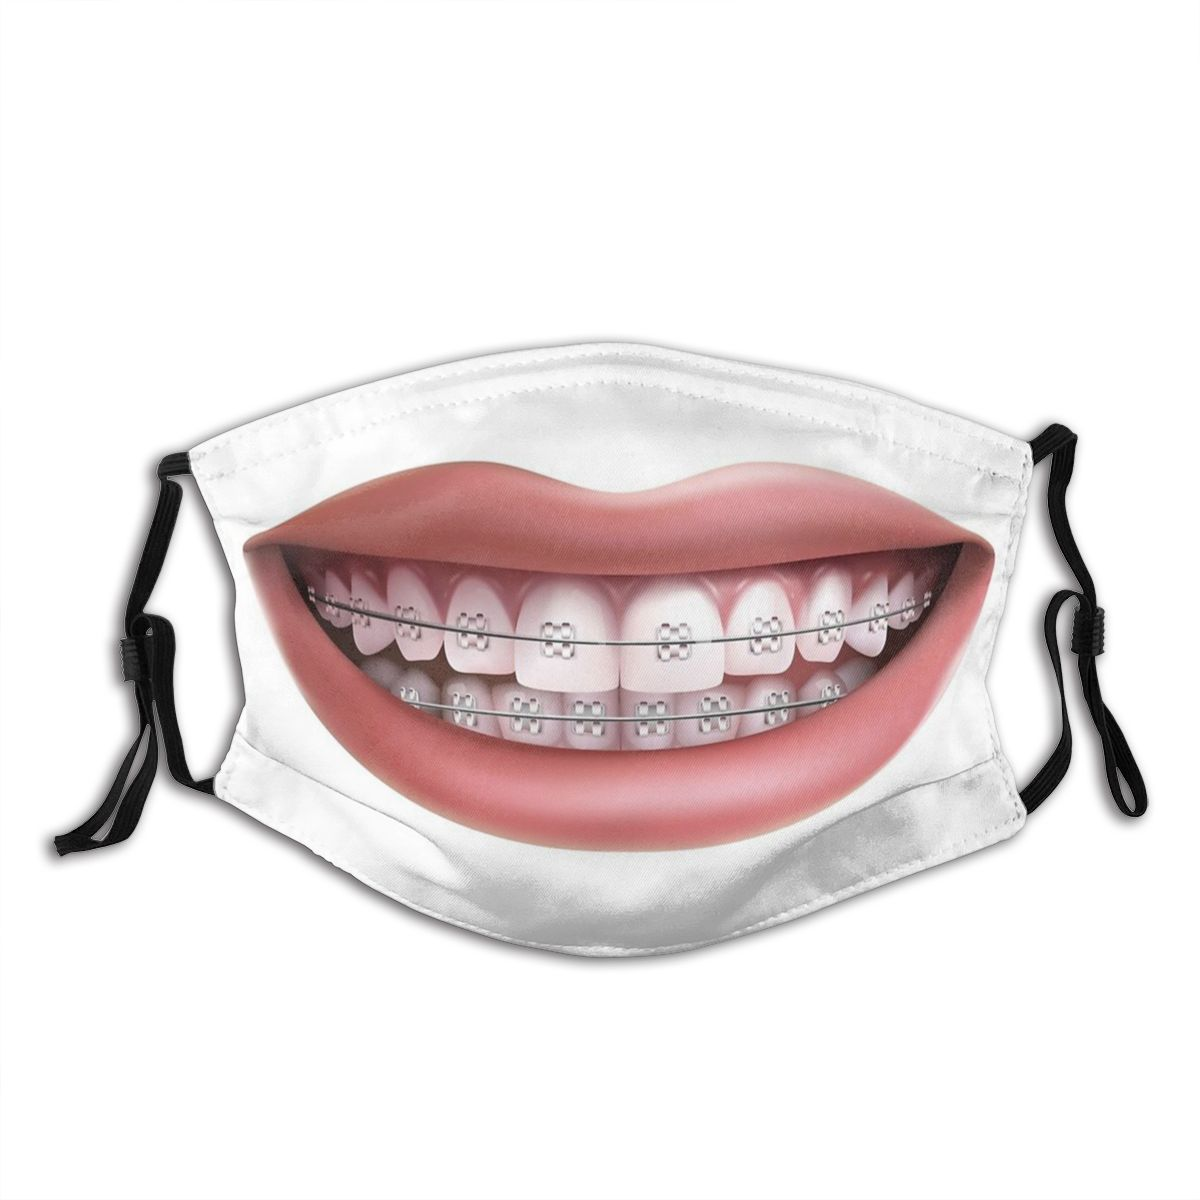 Smile Adult Reusable Face Mask Anti Bacterial Dust Mask With Filters Protection Mask Respirator Mouth Muffle